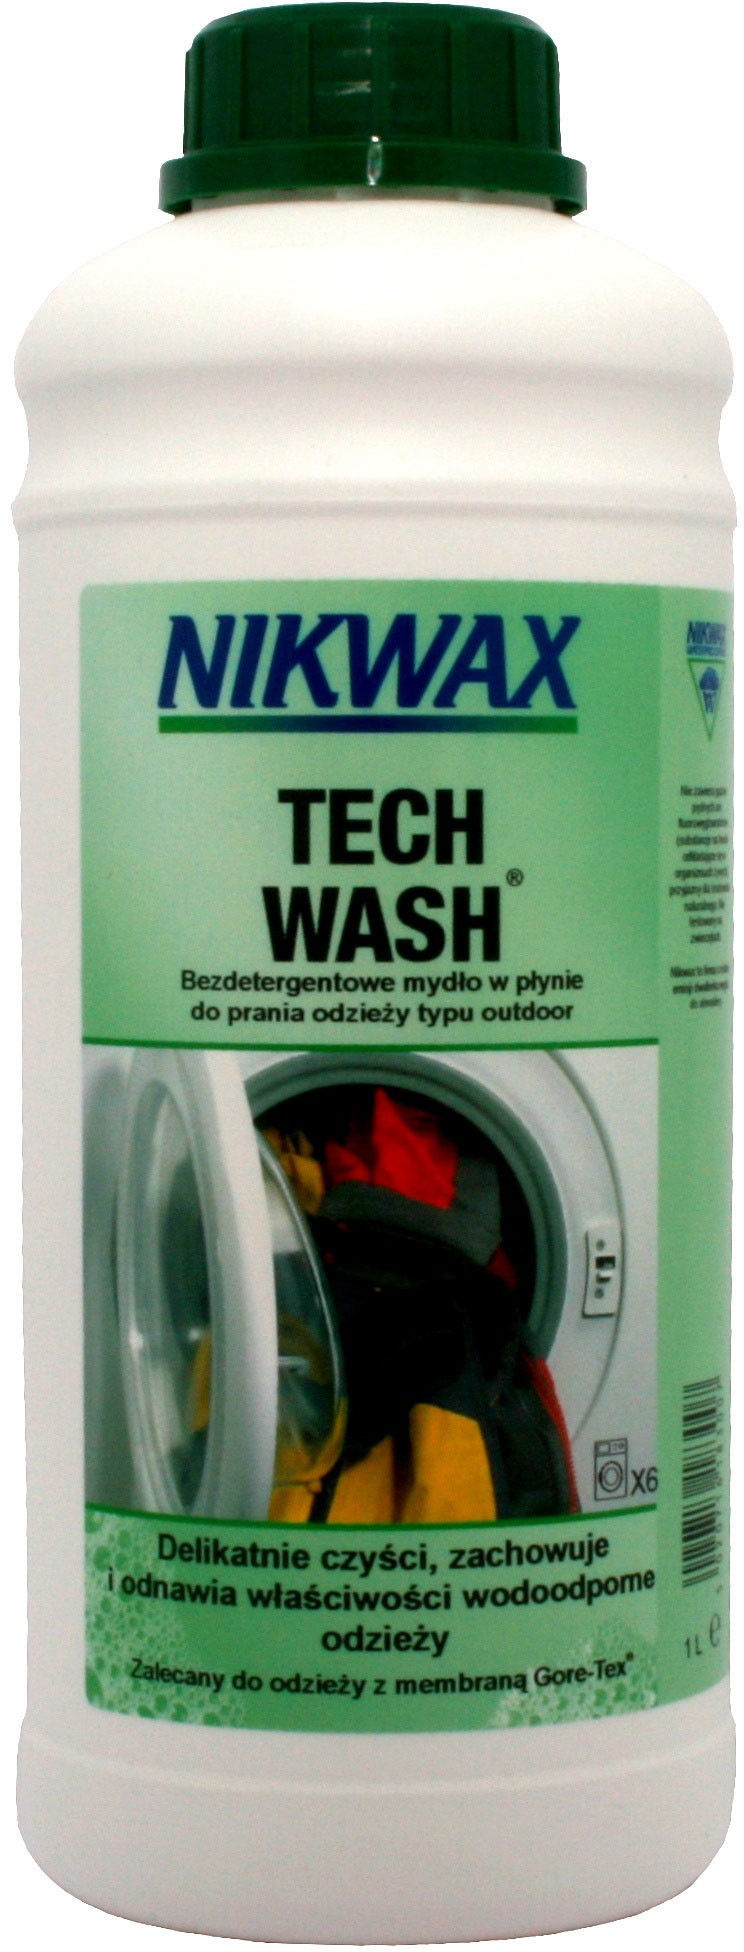 Nikwax Tech Wash środek piorący 1000ml